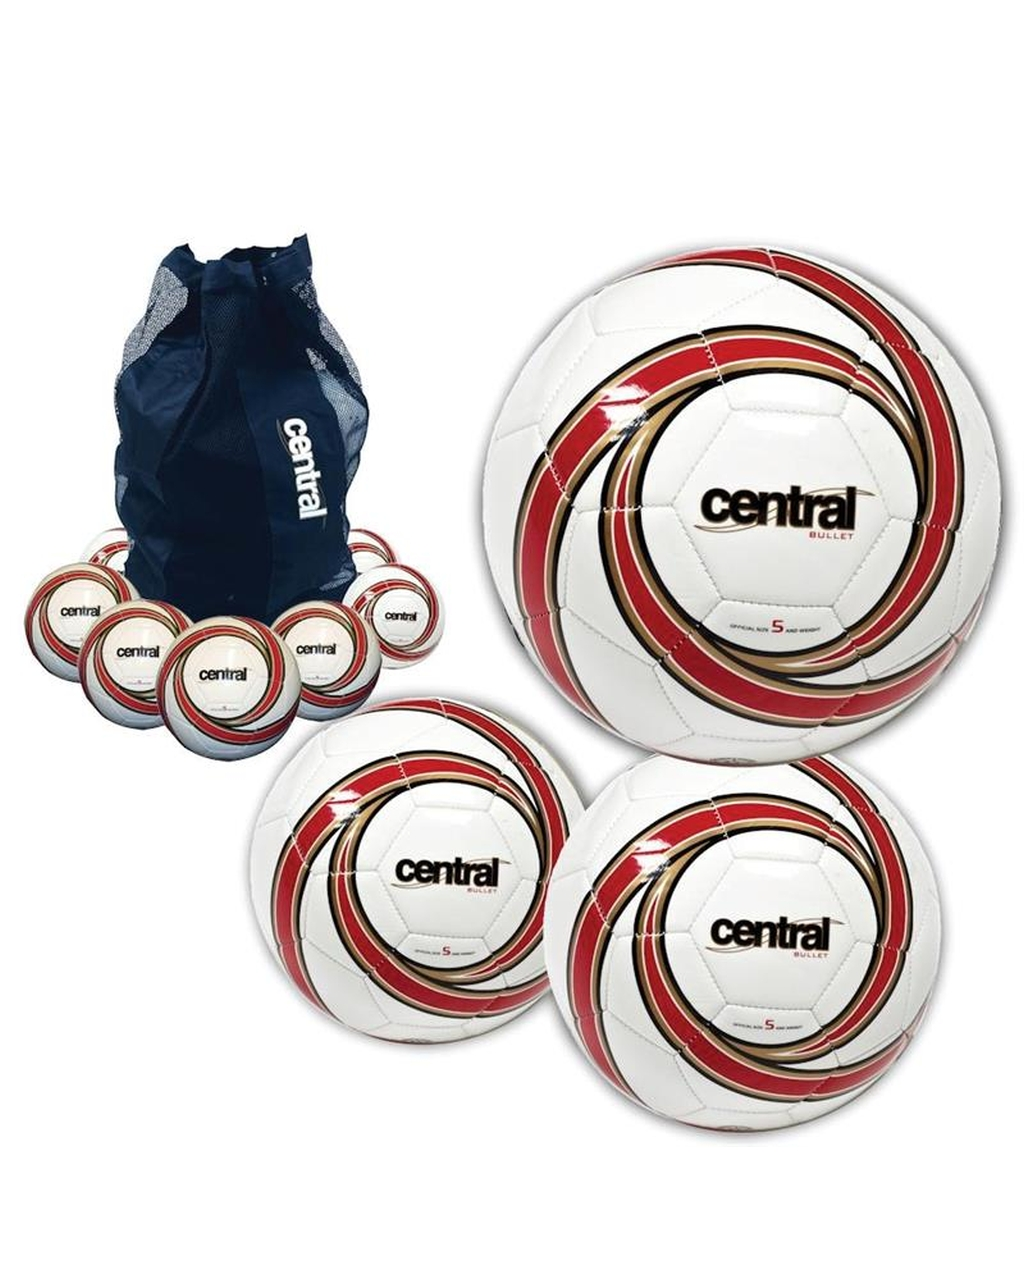 Central Bullet Football deal - size 4